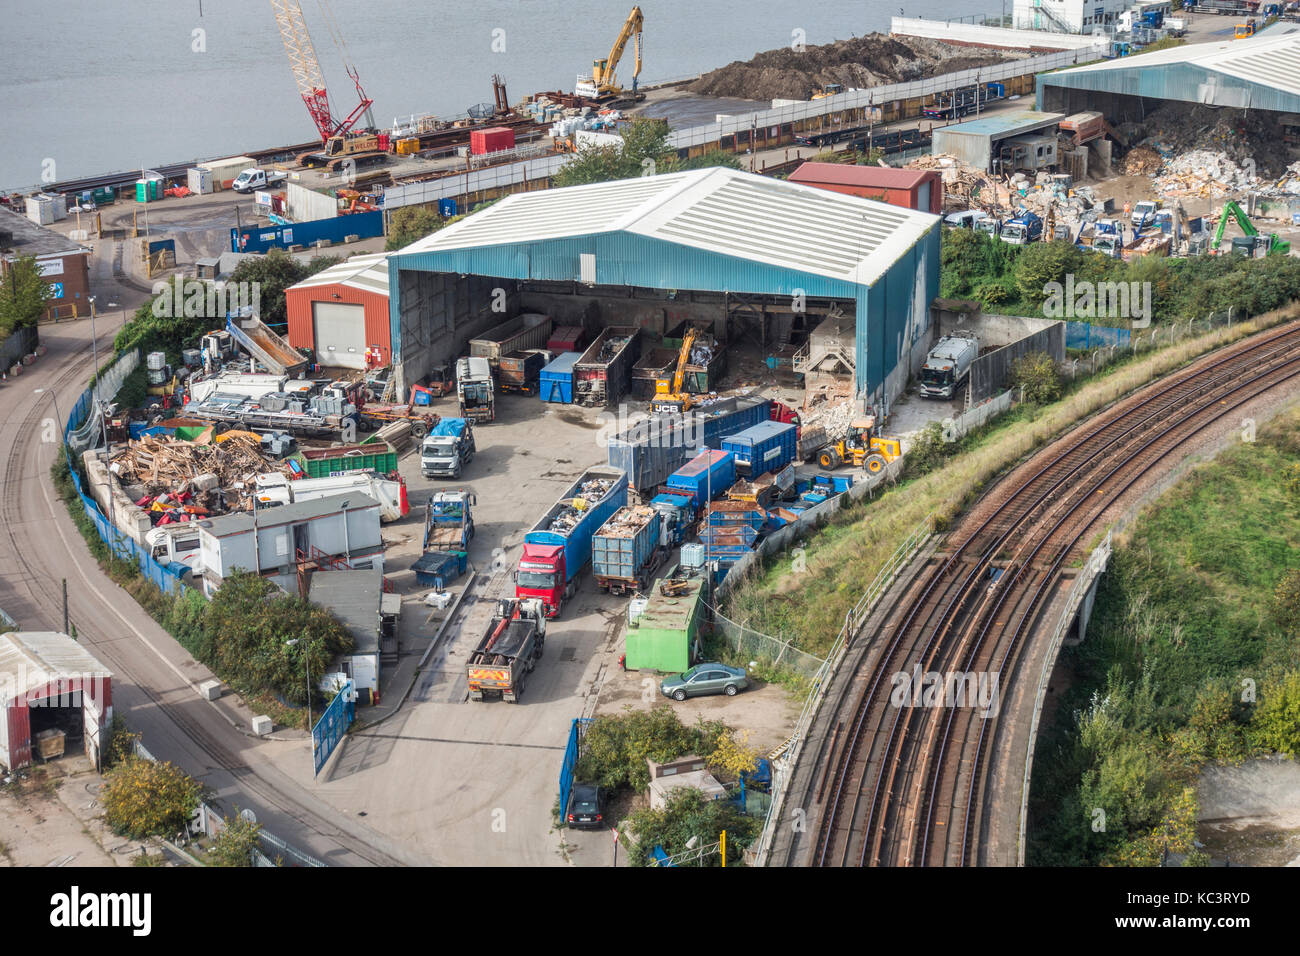 Next to the River Thames, an overhead shot of the premises of Docklands Waste Recycling Limited, Thames Wharf, SE - Stock Image